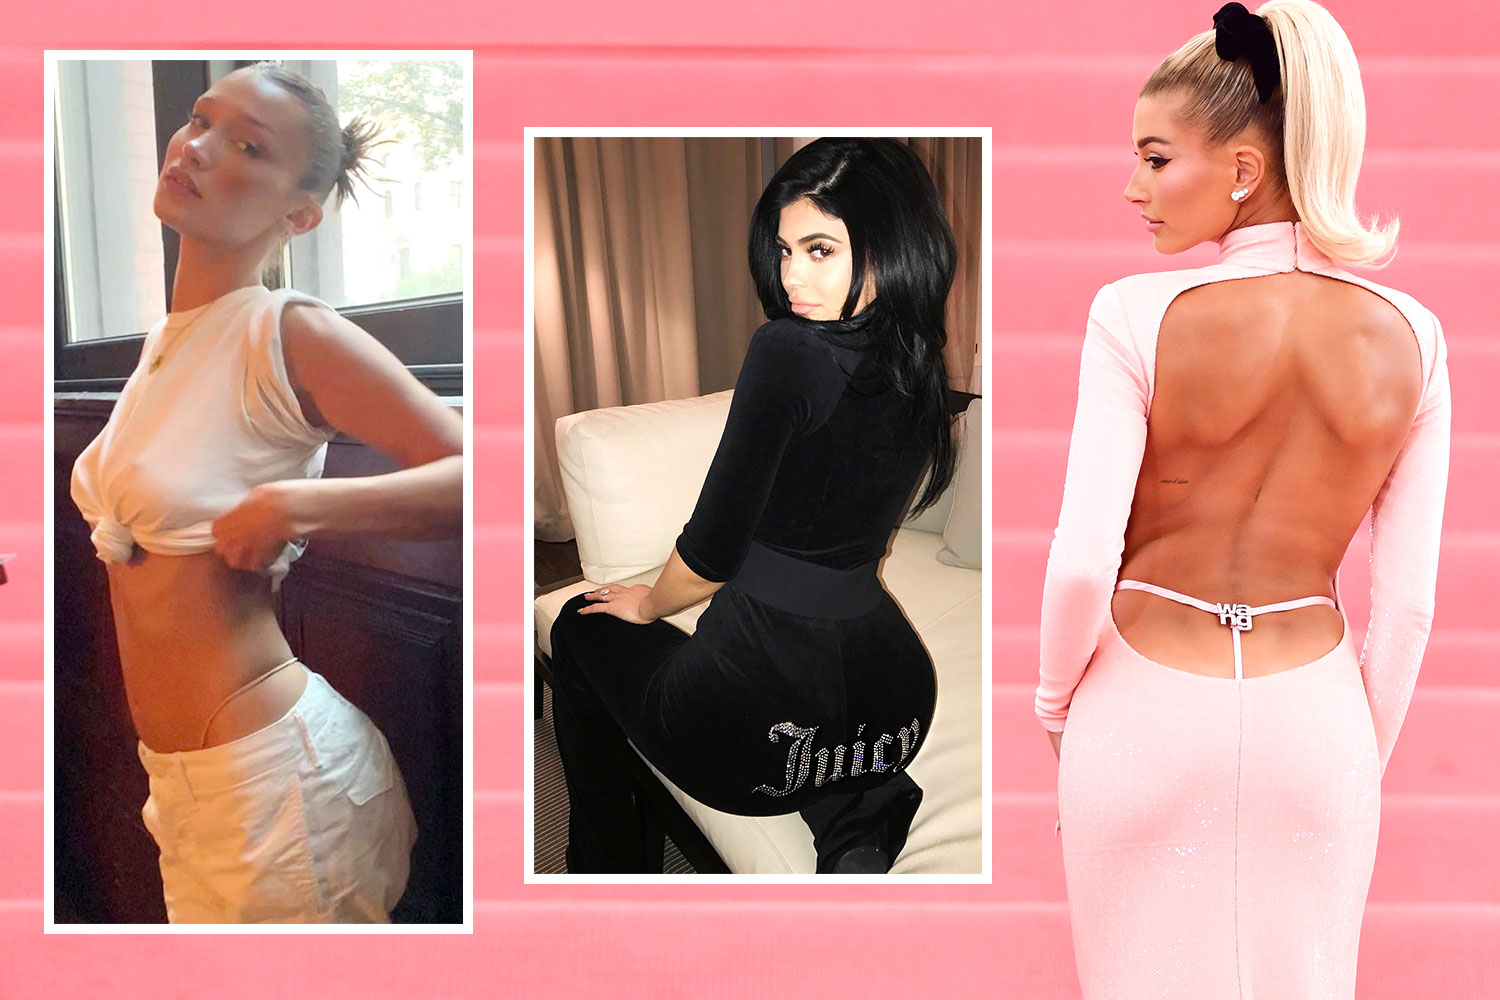 Brace Yourself, Because Butt Fashion Is Back